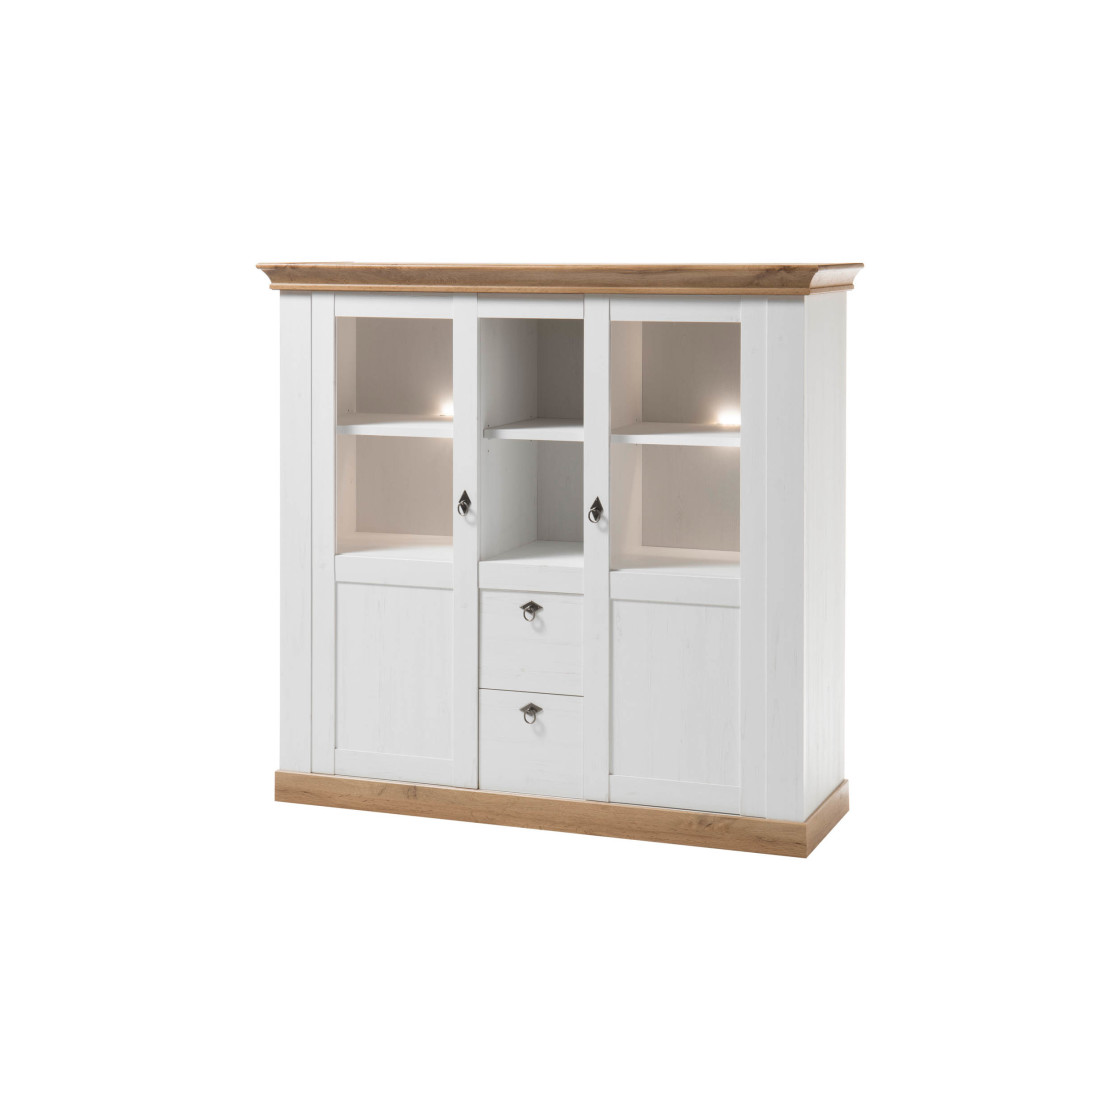 Highboard Landhaus - Pinie Weiß / Applikation Wotan Eiche, 369,00 €